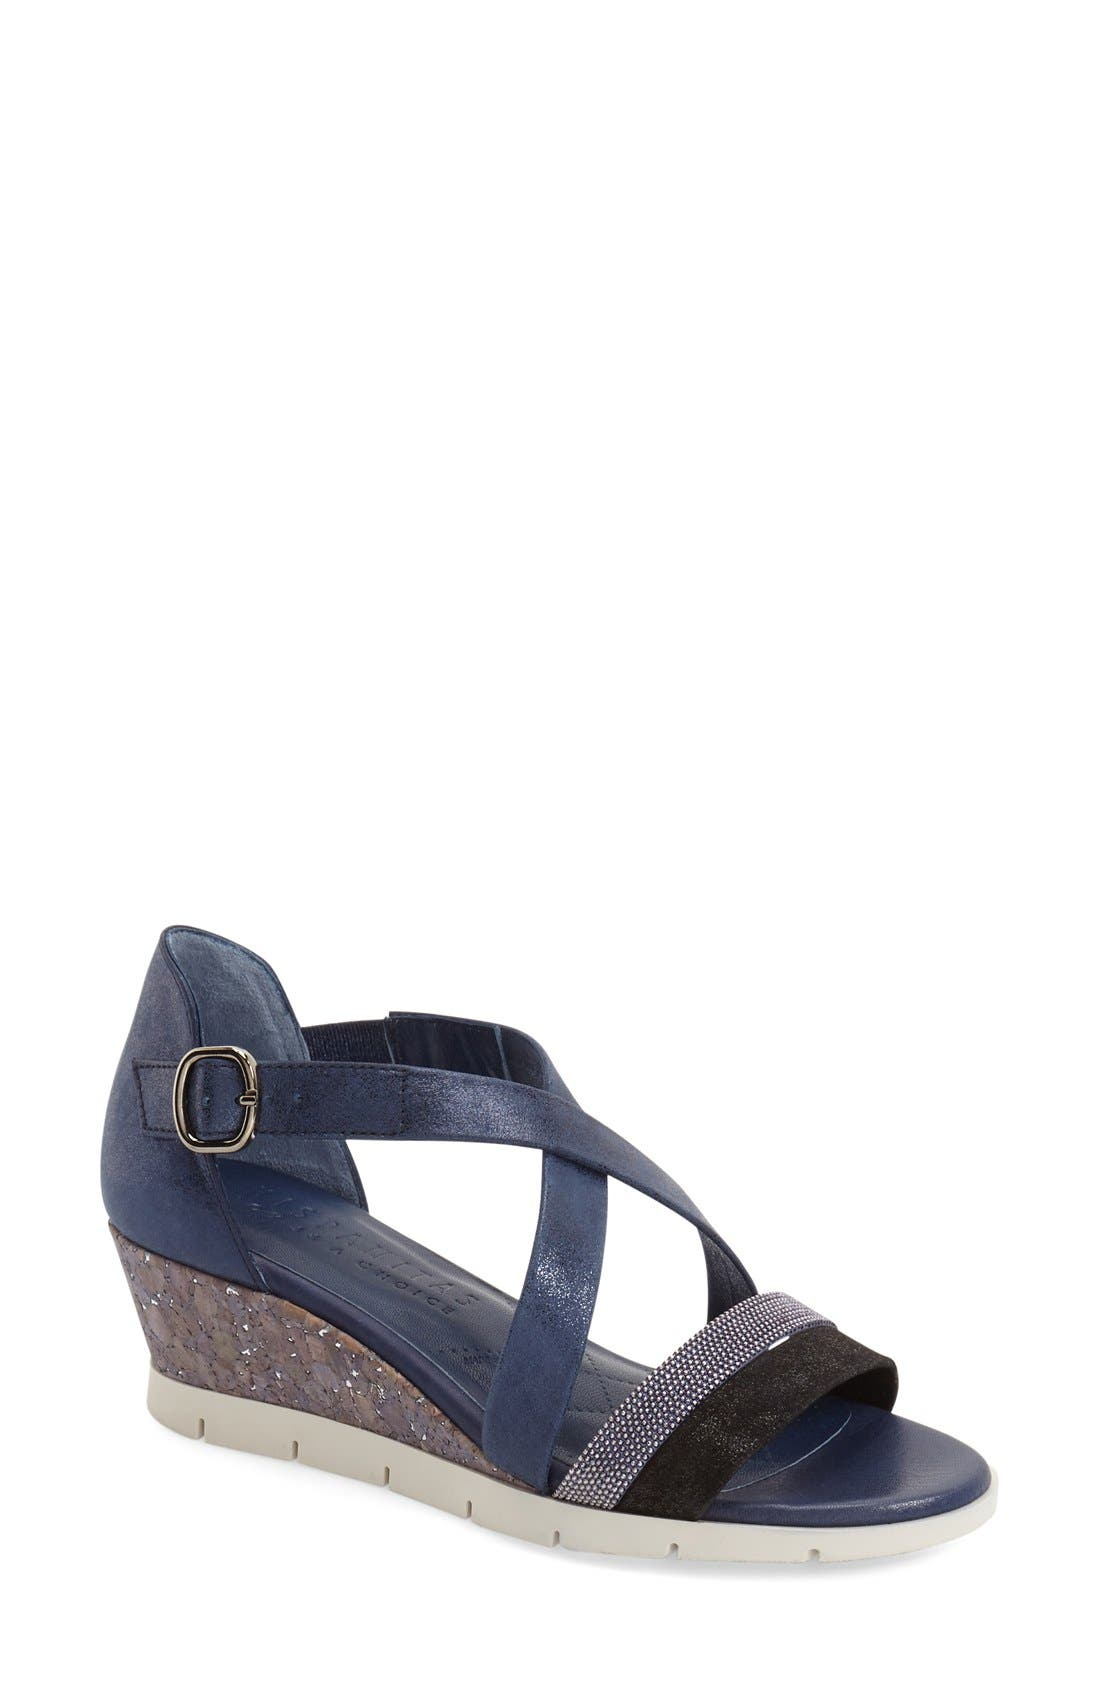 HISPANITAS 'Kennedi' Wedge Sandal